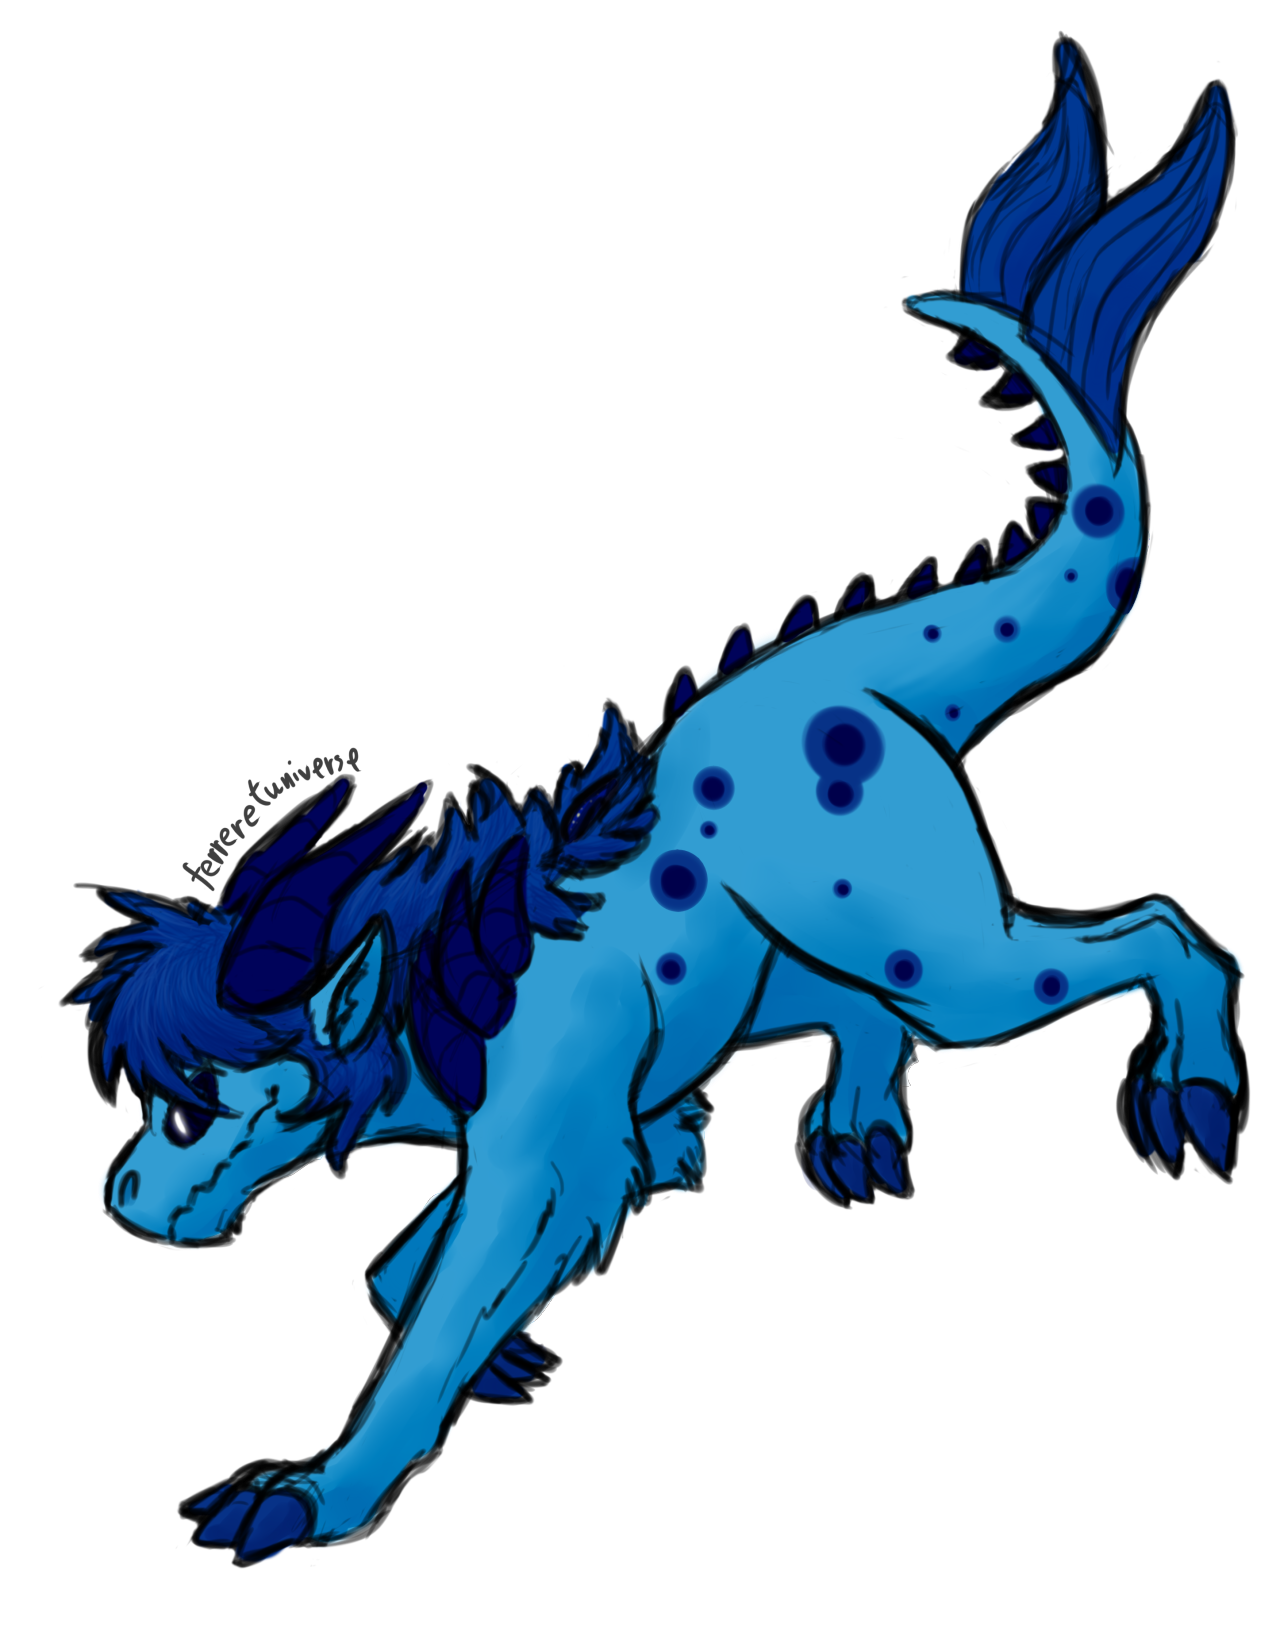 doodled @flamingheadphones 's corrupted Lapis! had a lot of fun with this one